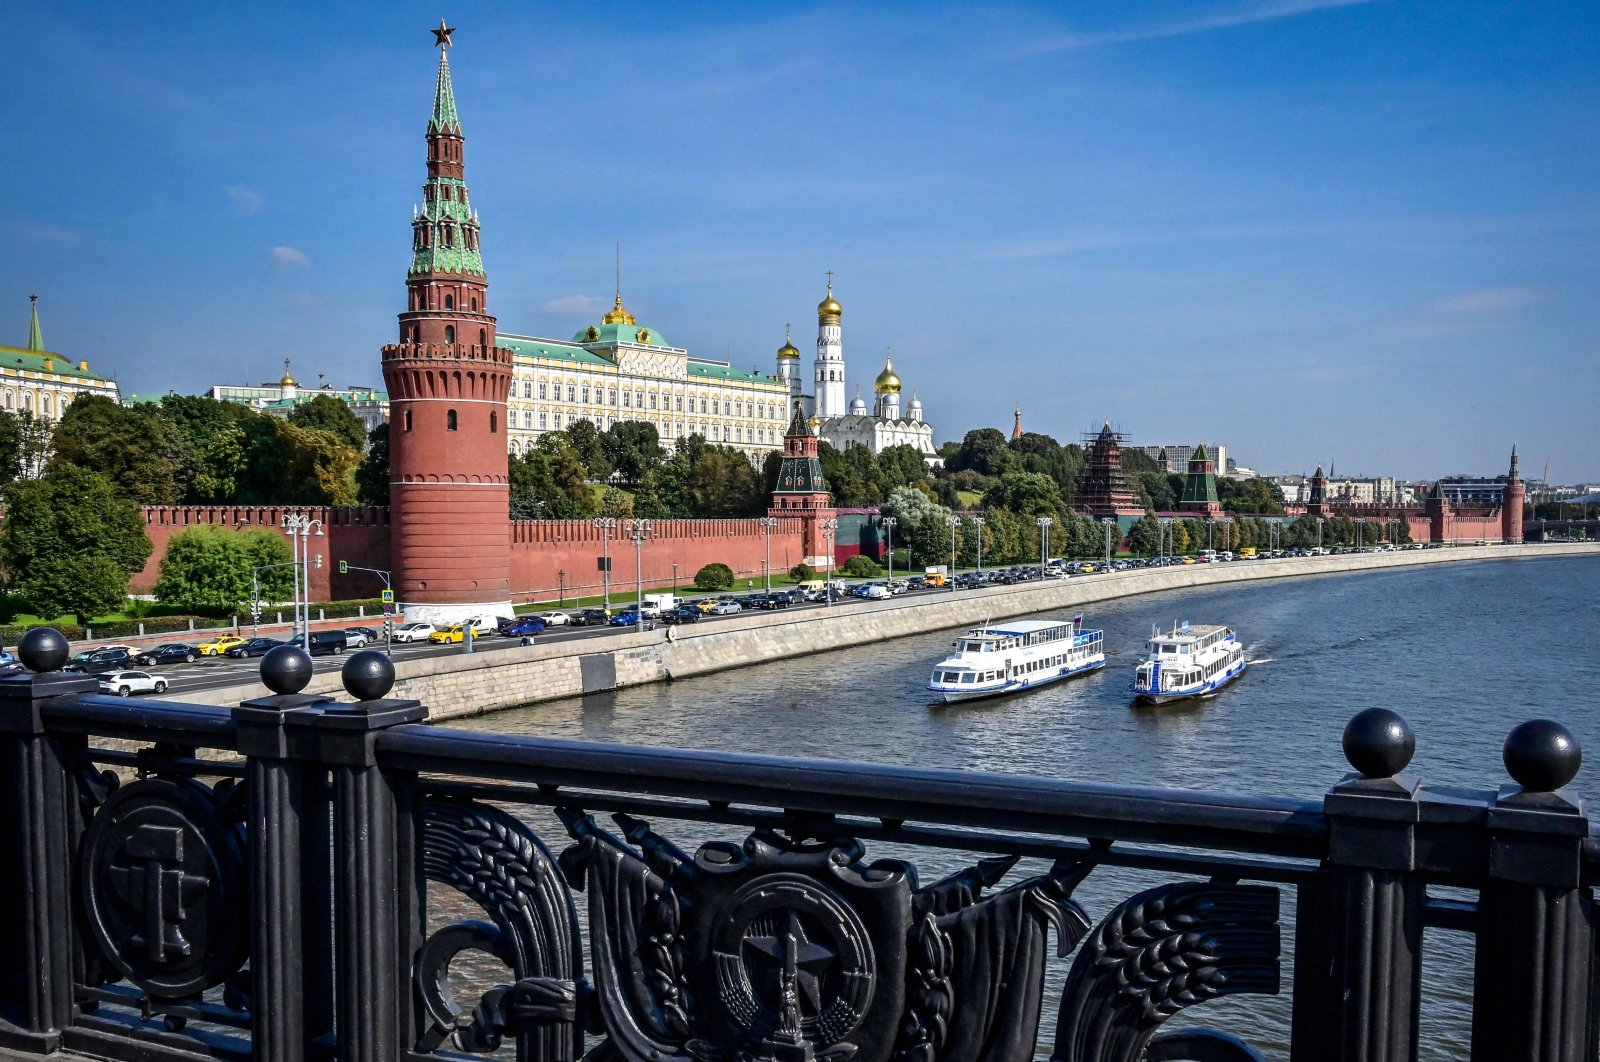 Leisure boats sail on the Moskva river past the Kremlin in Moscow on Sept. 13, 2021. (AFP Photo)